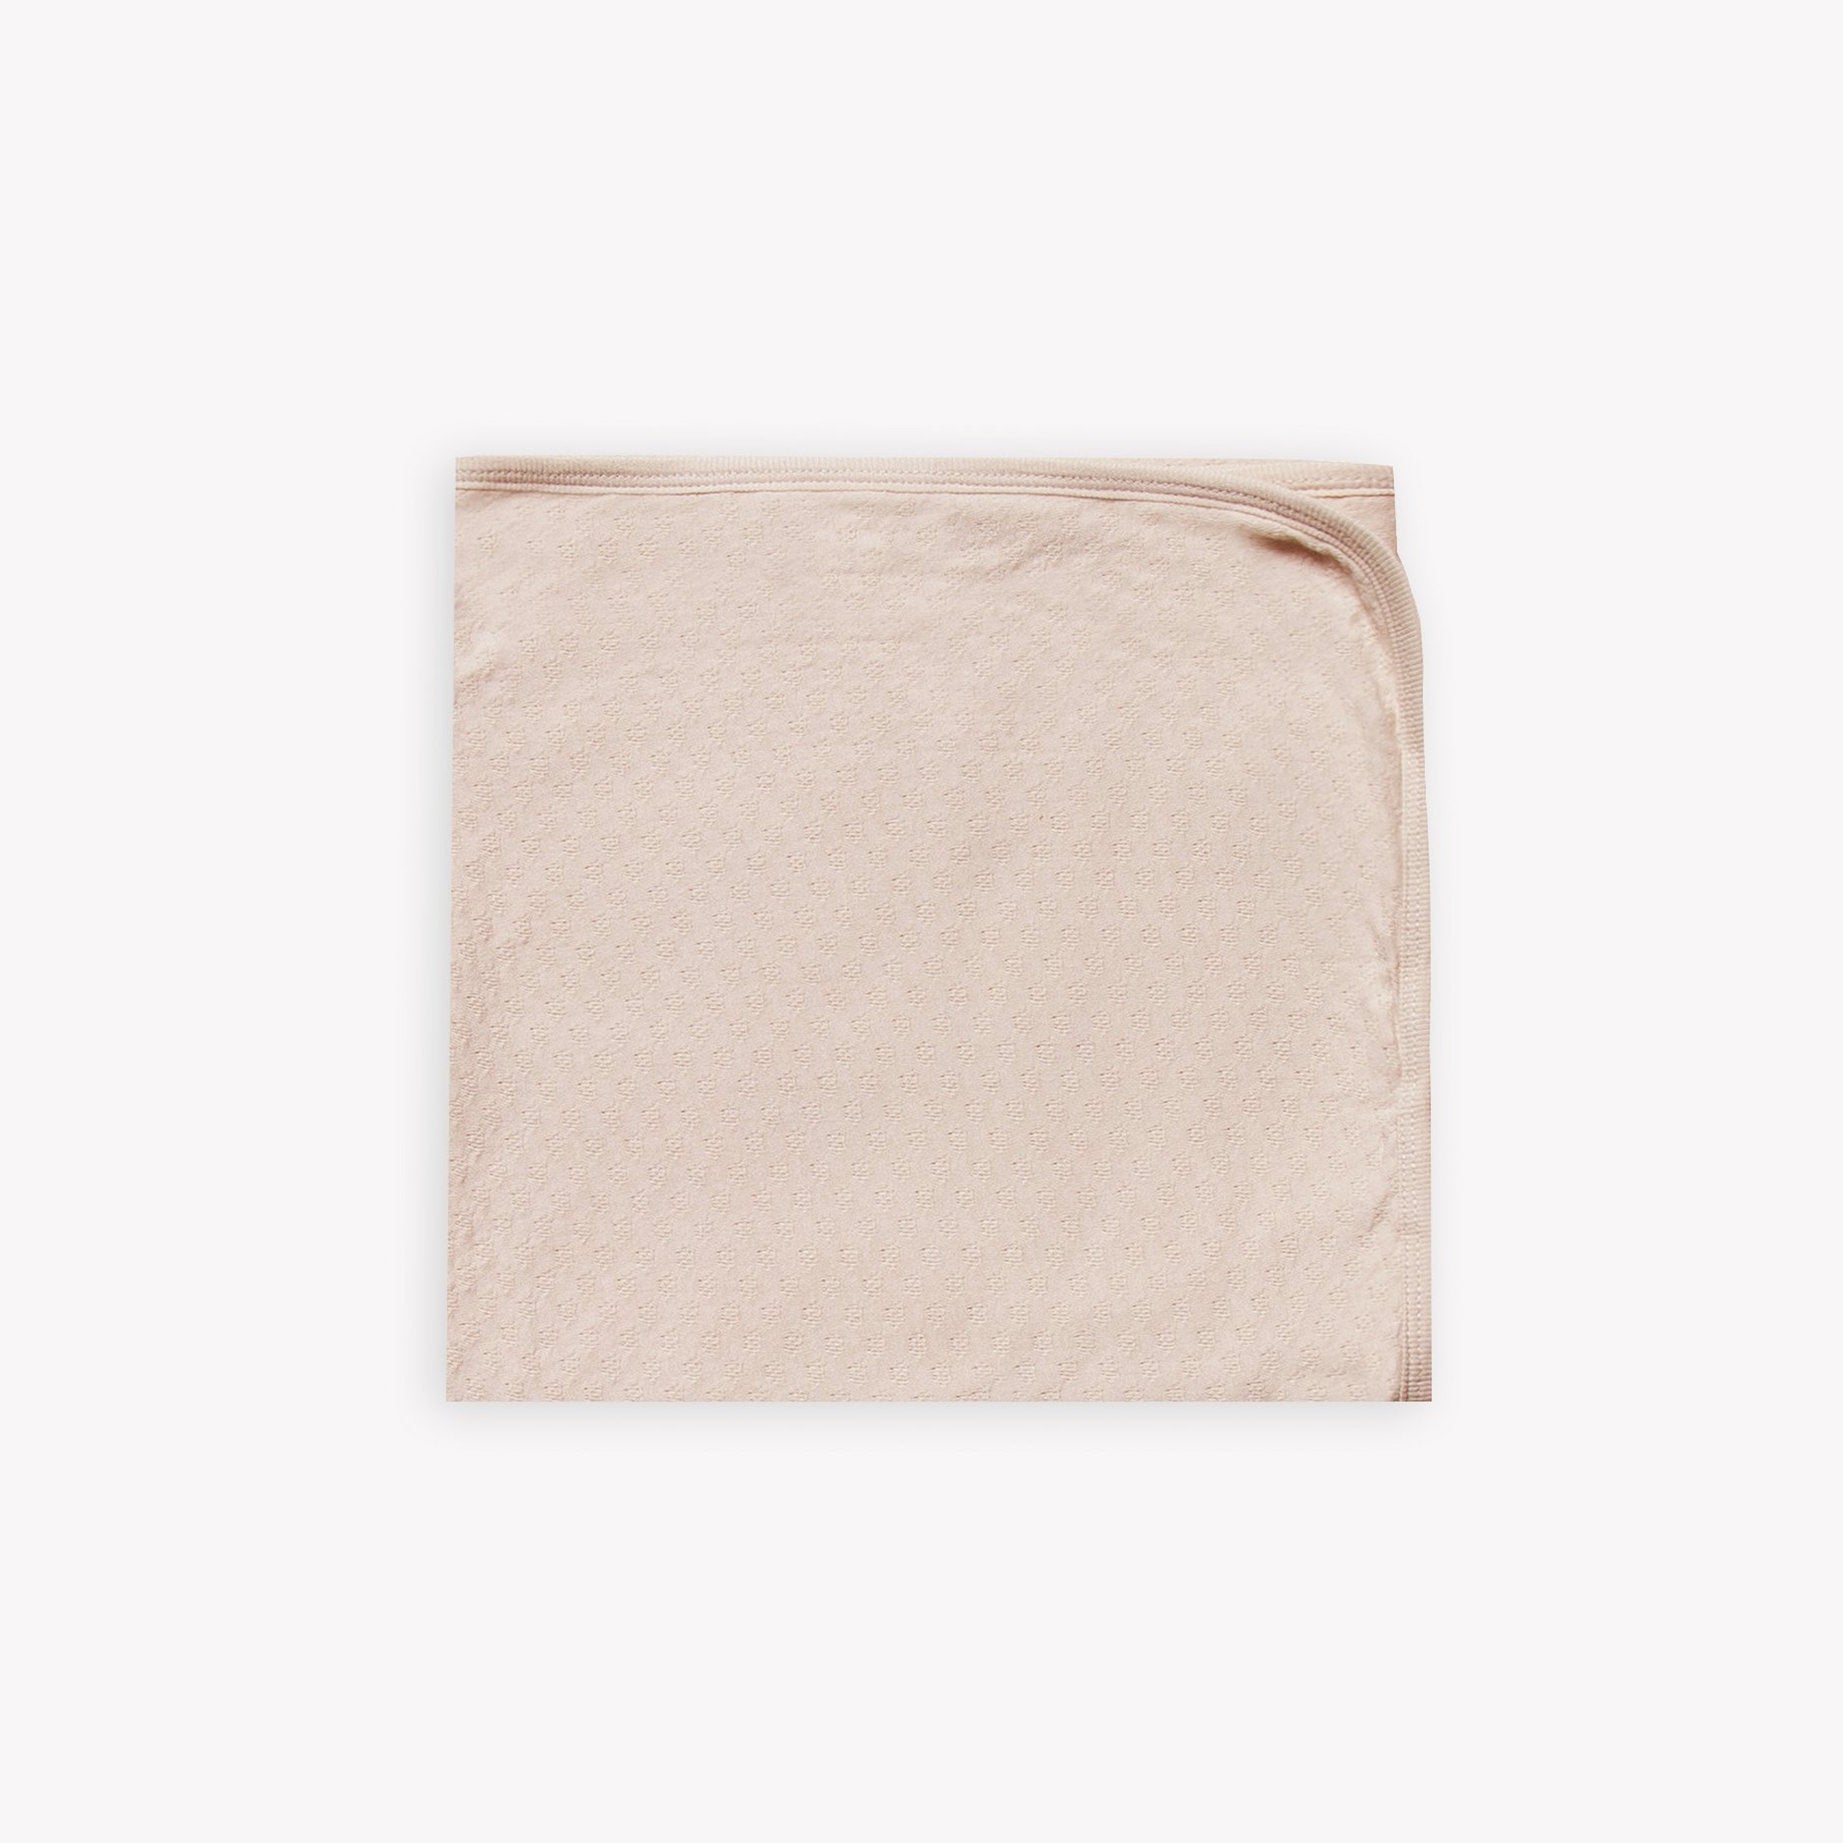 Quincy Mae organic cotton pointelle baby blanket - rose